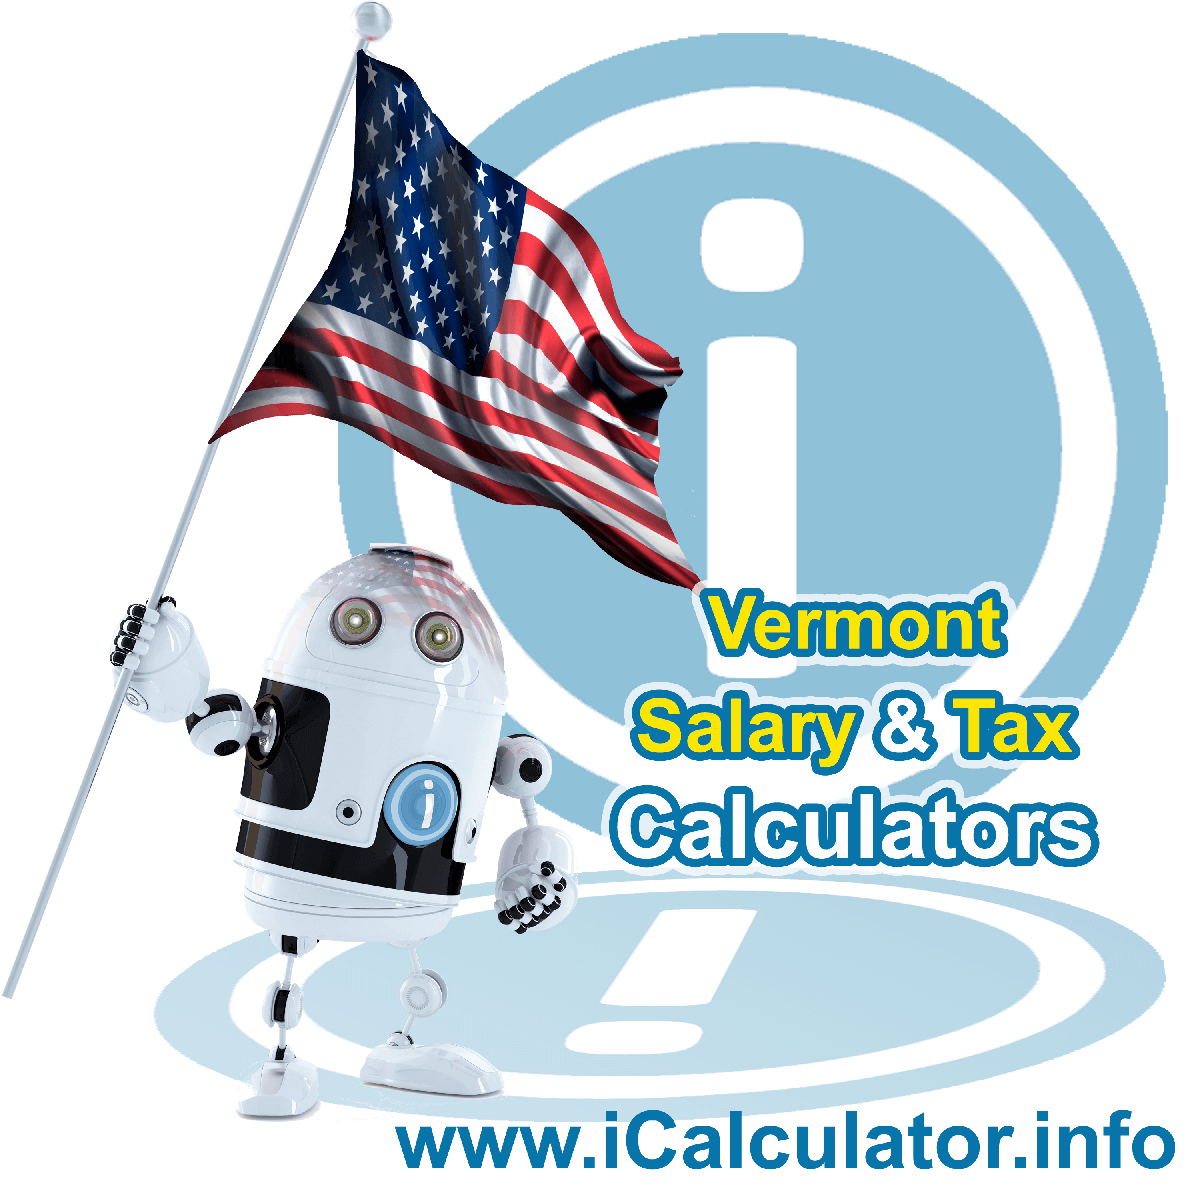 Vermont Salary Calculator 2020 | iCalculator | The Vermont Salary Calculator allows you to quickly calculate your salary after tax including Vermont State Tax, Federal State Tax, Medicare Deductions, Social Security, Capital Gains and other income tax and salary deductions complete with supporting Vermont state tax tables